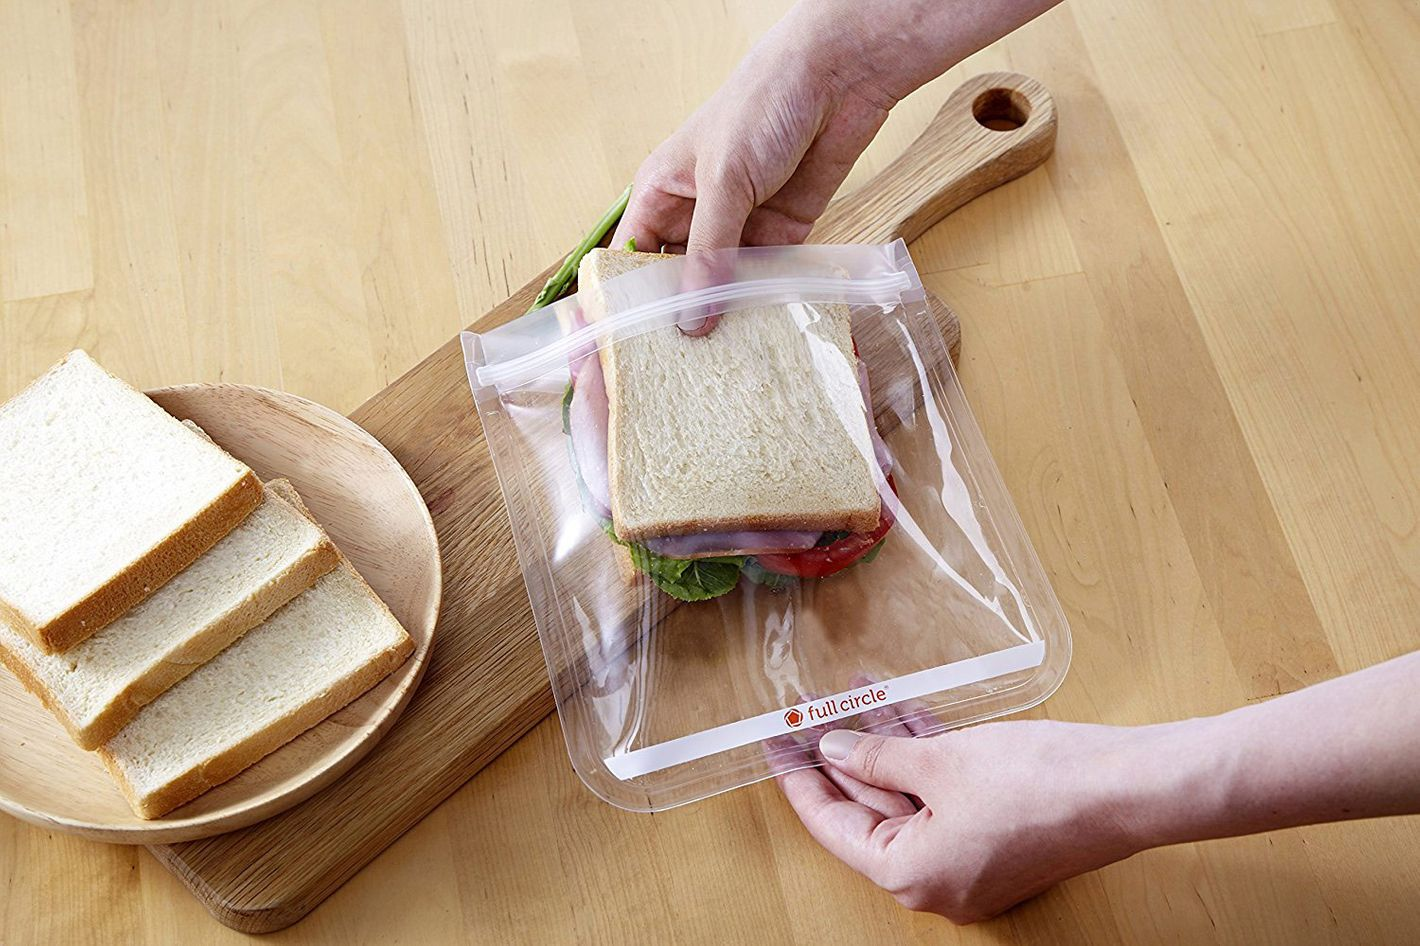 Full Circle Zip Tuck Sandwich Bags